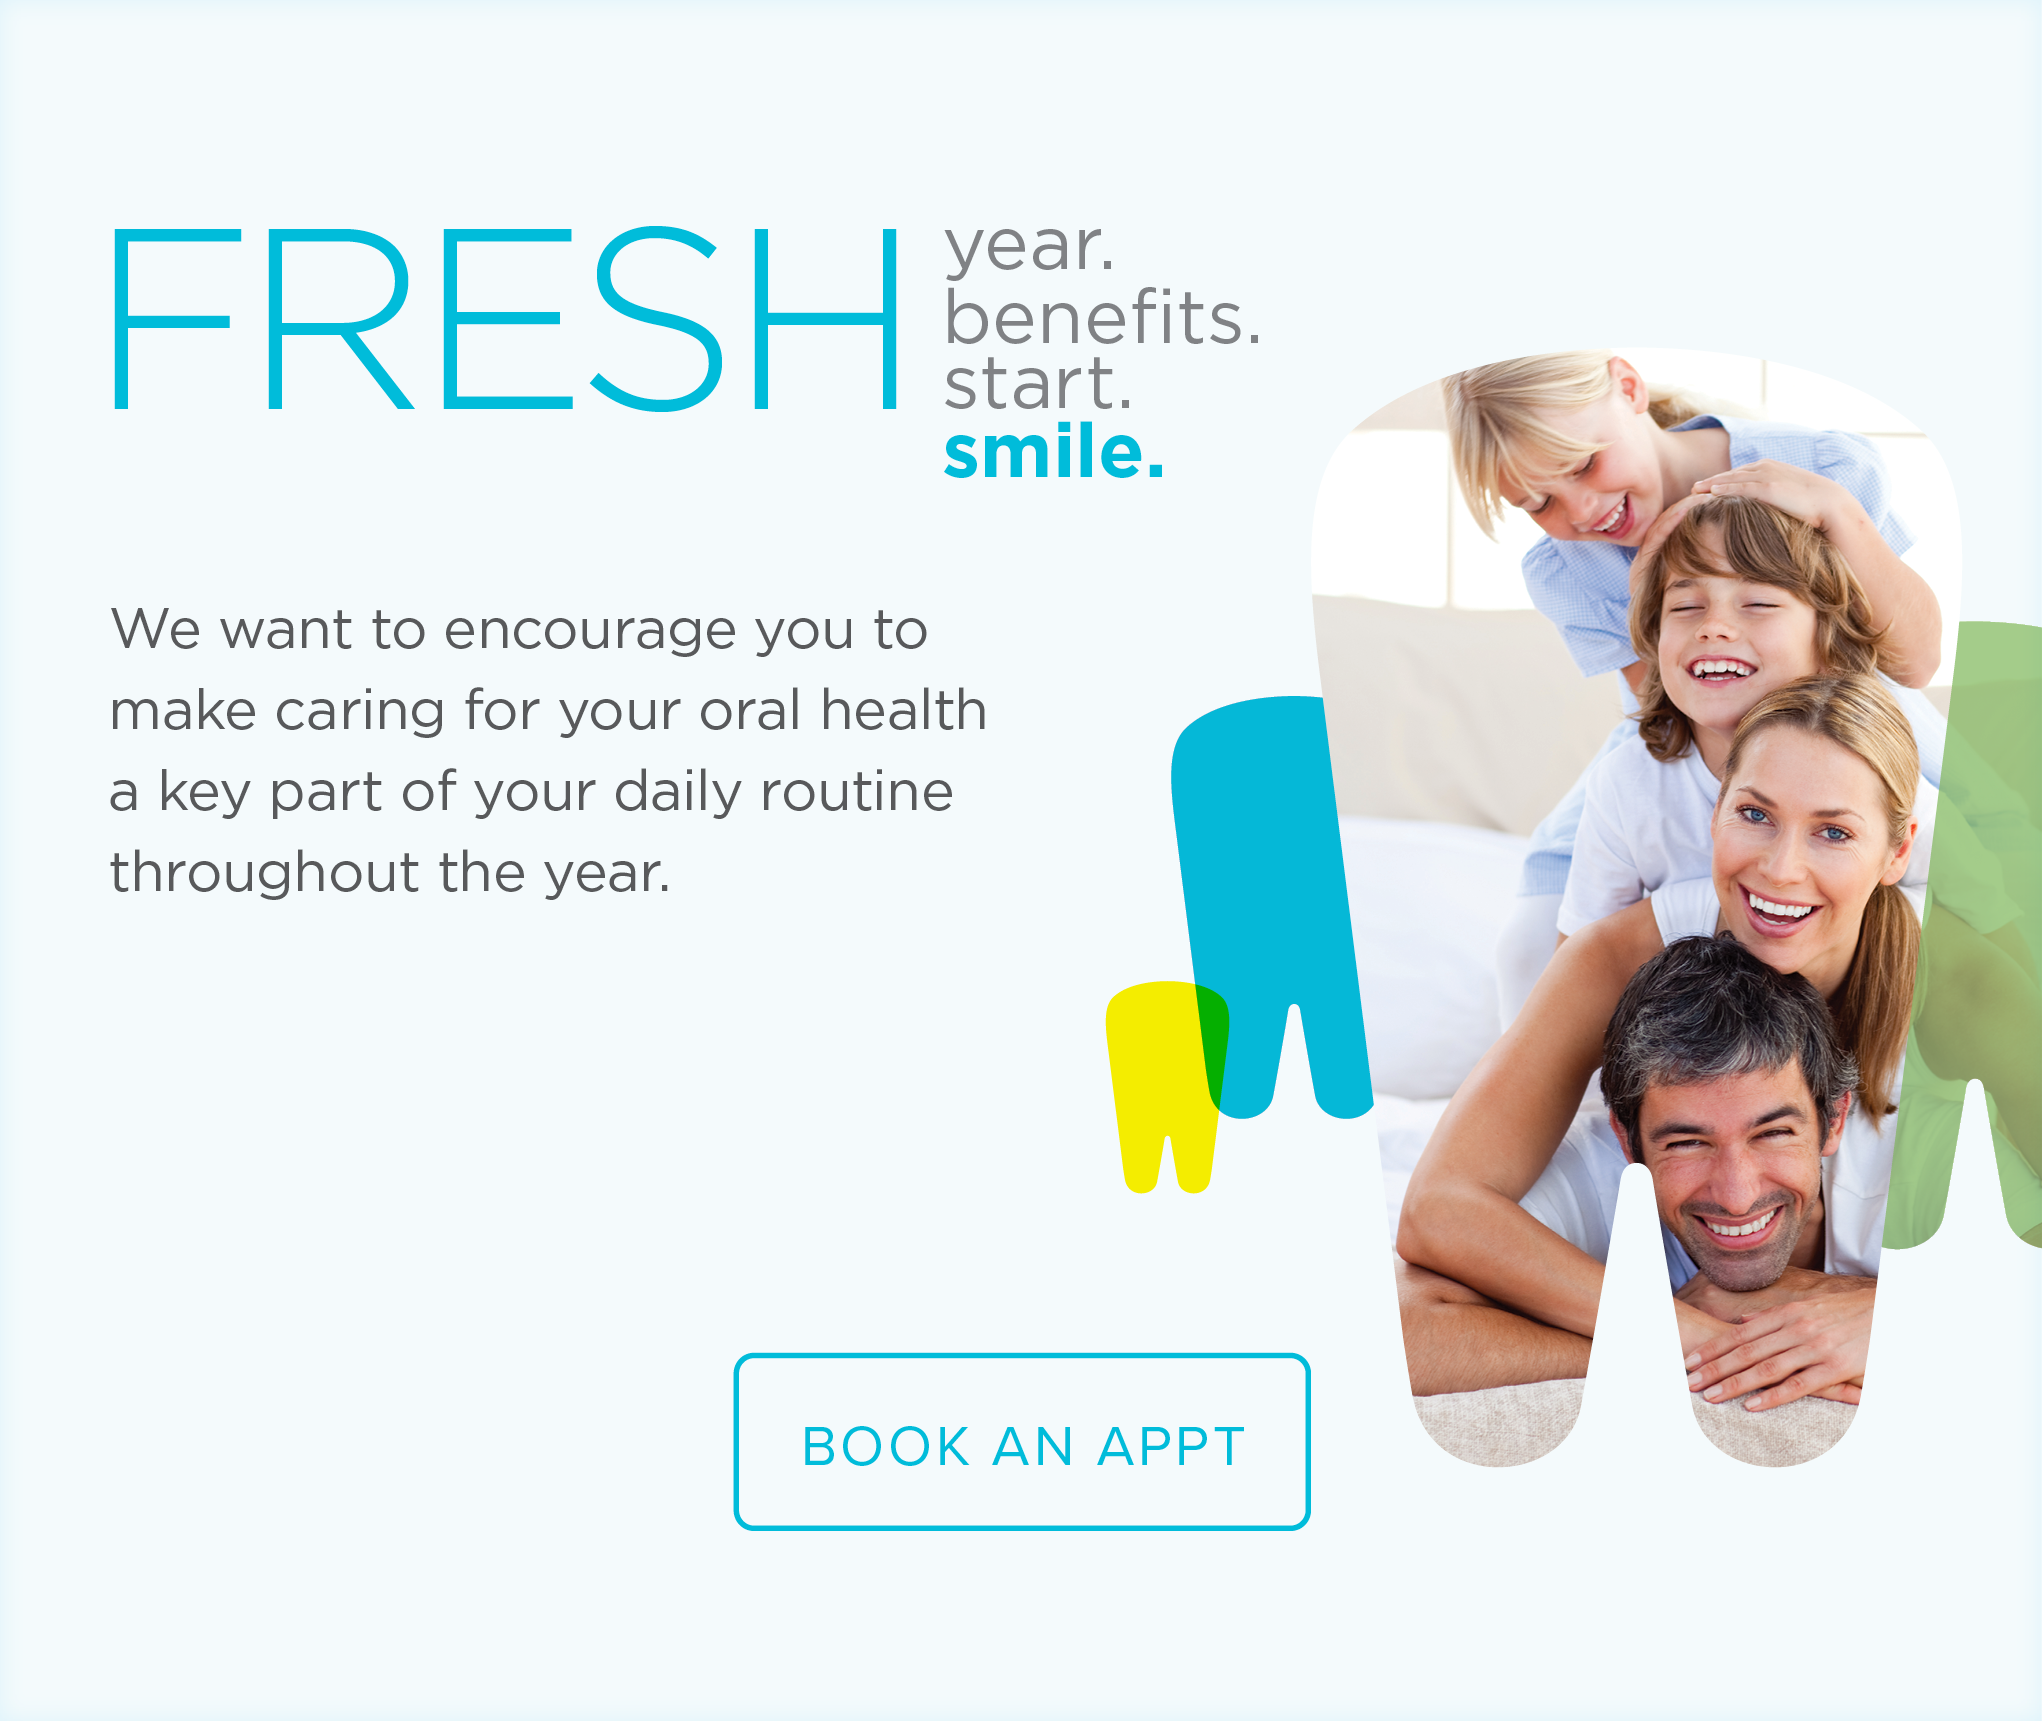 NRH Modern Dentistry - Make the Most of Your Benefits